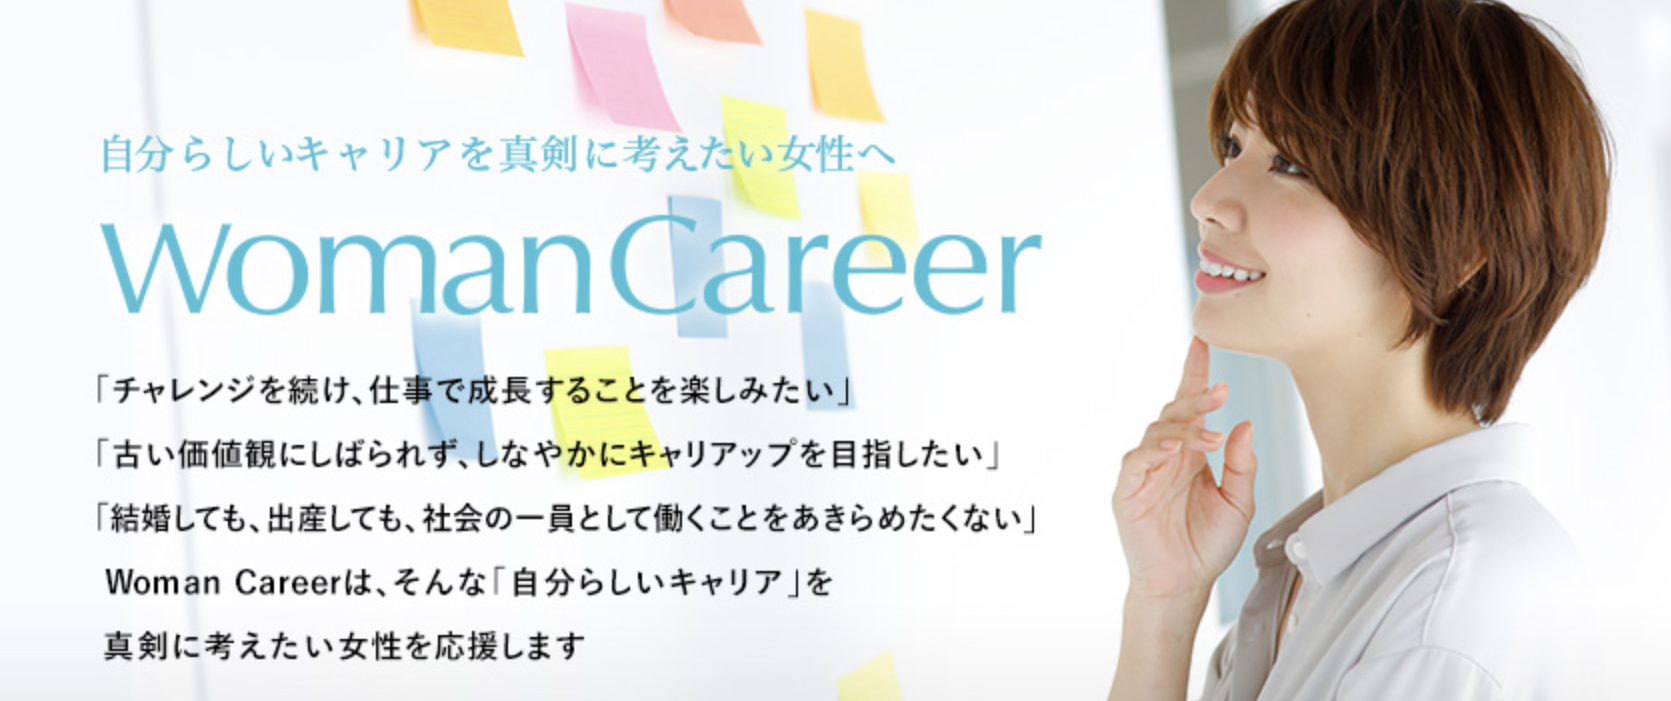 DODAのWoman Career